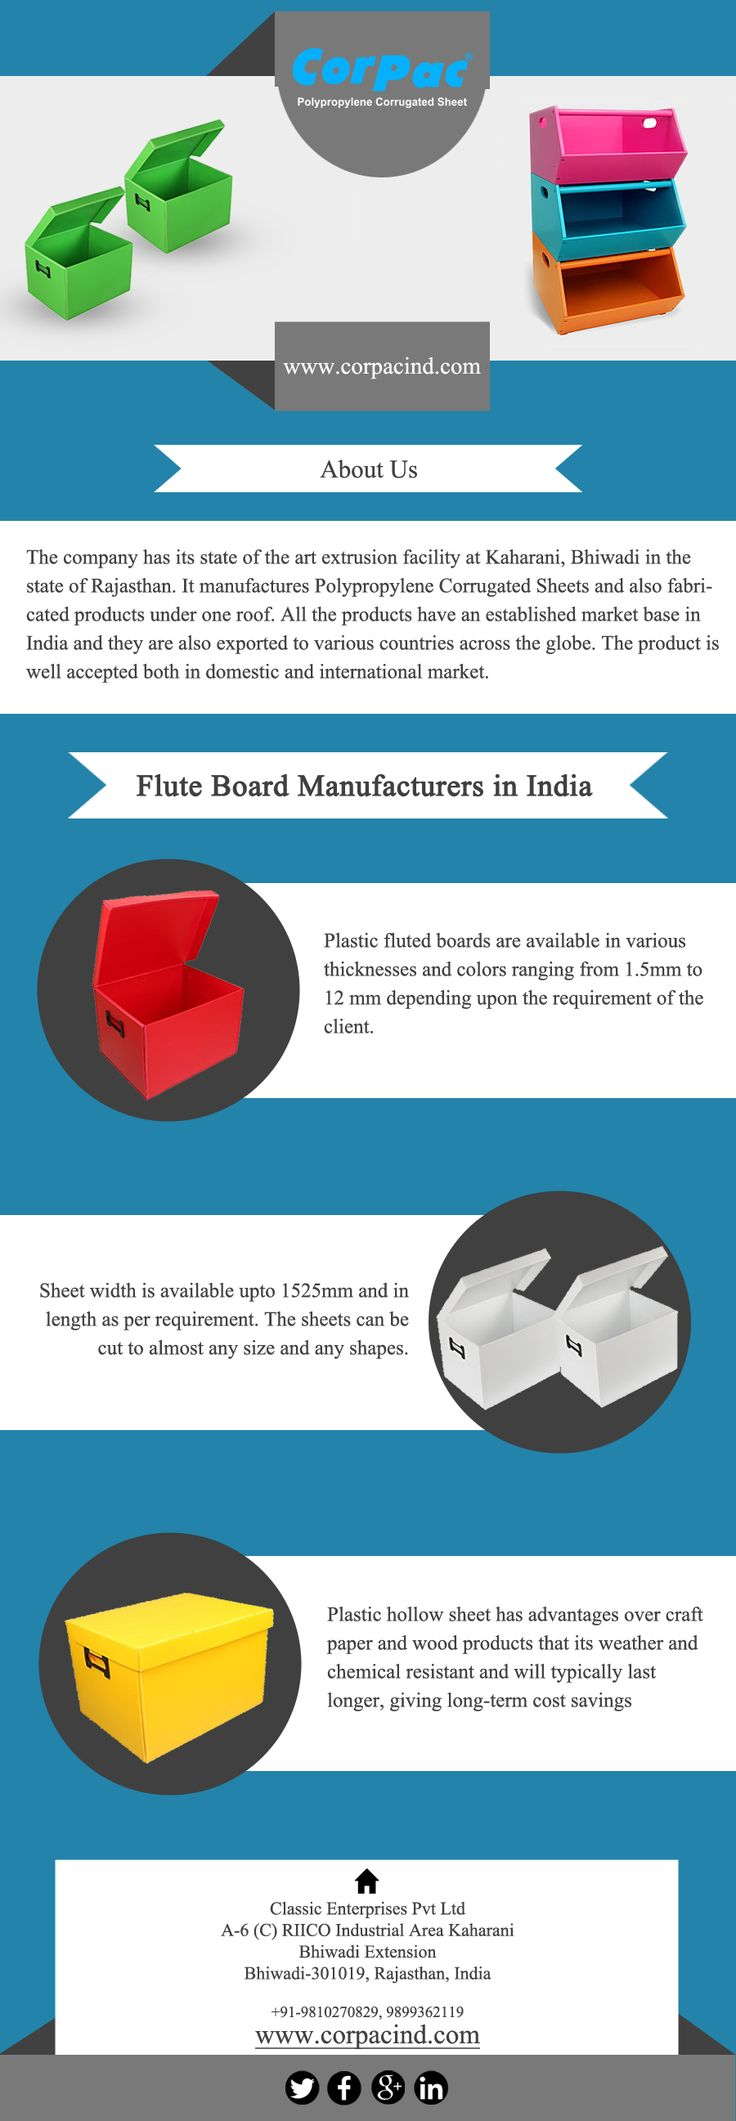 Welcome to One of the leading Flute Board Manufacturers in India. Flute boards are used for packaging glass made products, delicate items, Electric and tiny electronic parts, Lab ware, and auto parts to ensure these products' protection while shipping.  These are best packaging material for rural marketing and an easily-washable product also. We are known as the best quality Flute Boards Manufacturers in Gujarat,Delhi and all Over India.      For more info visit on  http://www.corpacind.com/